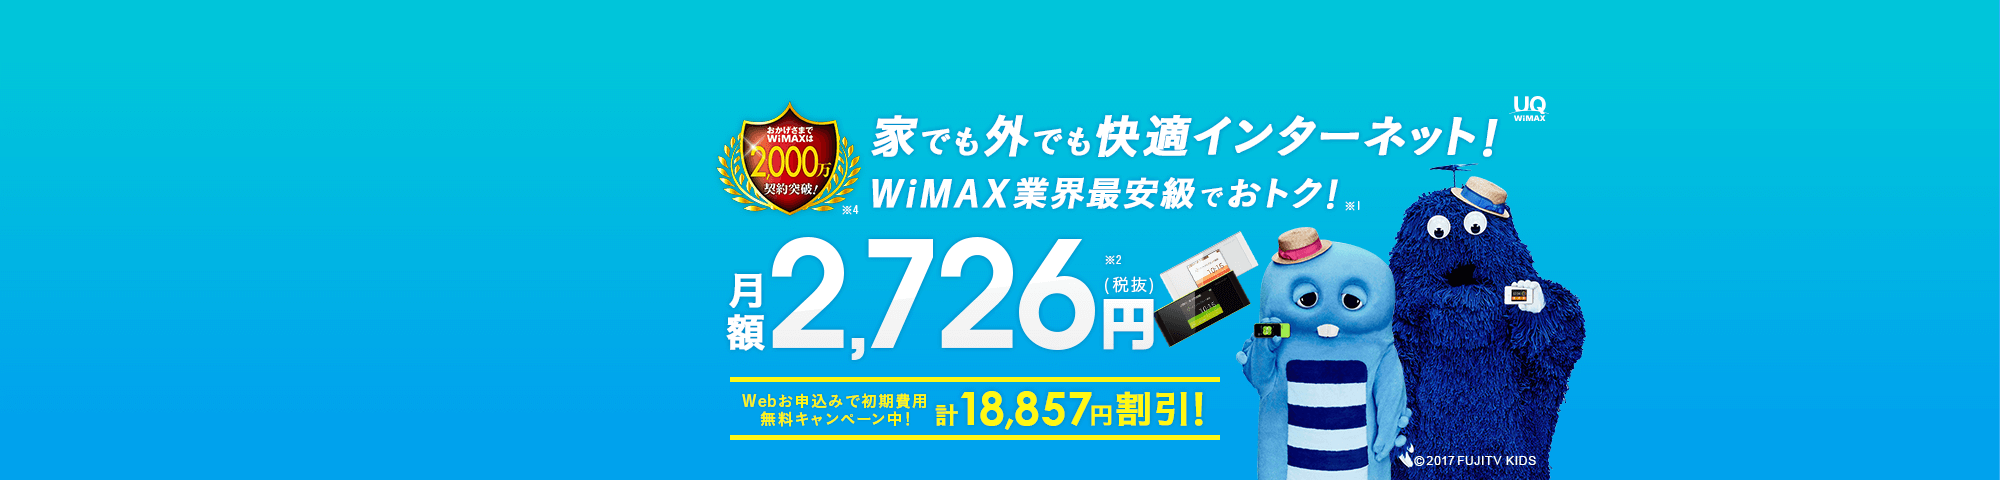 Broad WiMAX 2000×480_4のバナーデザイン